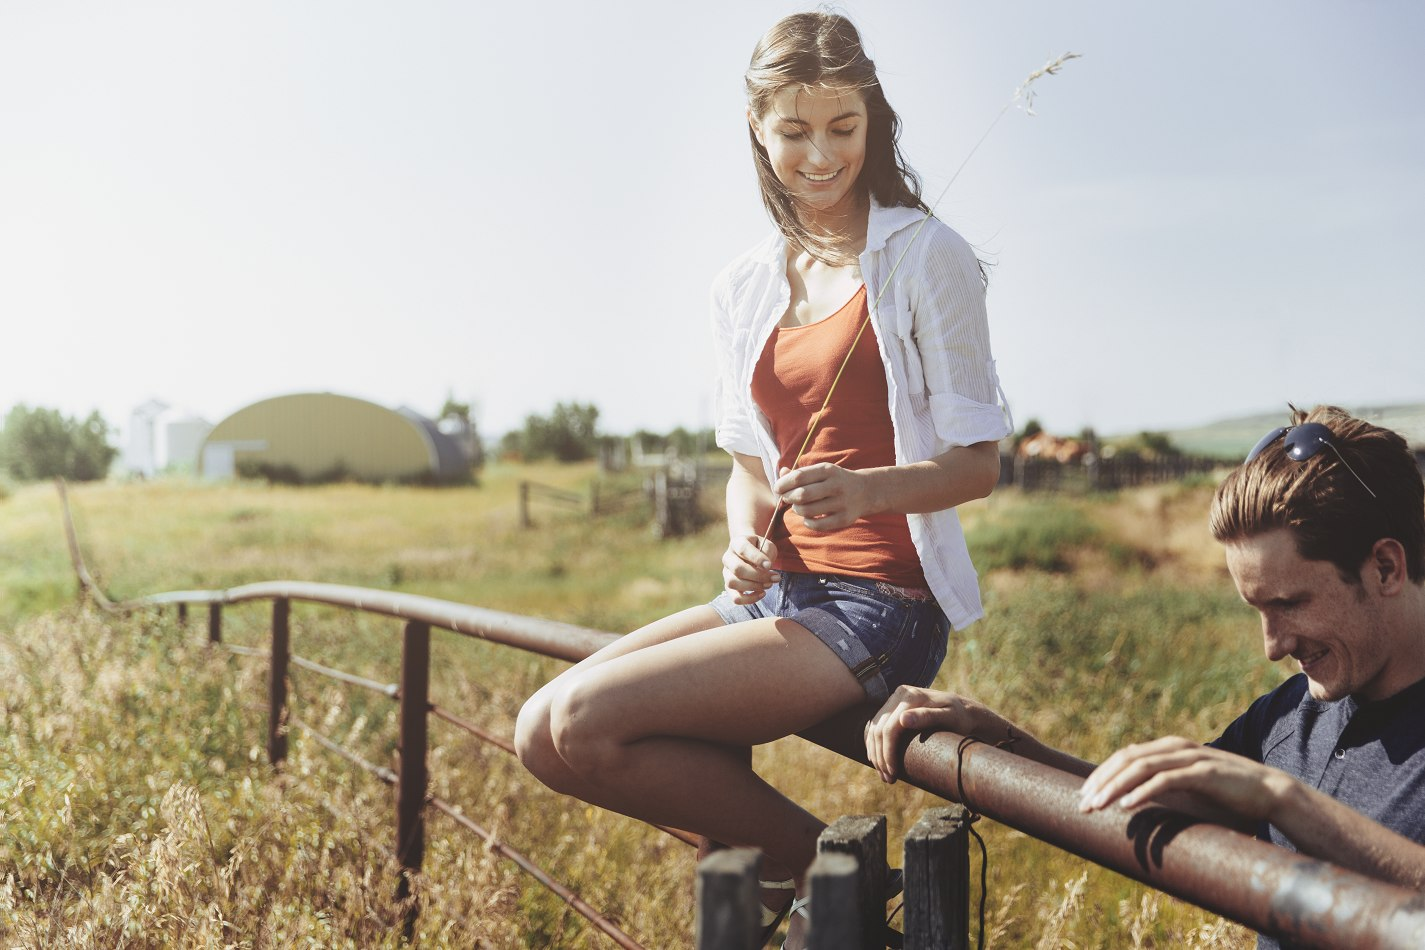 Travel Alberta Lifestyle Model